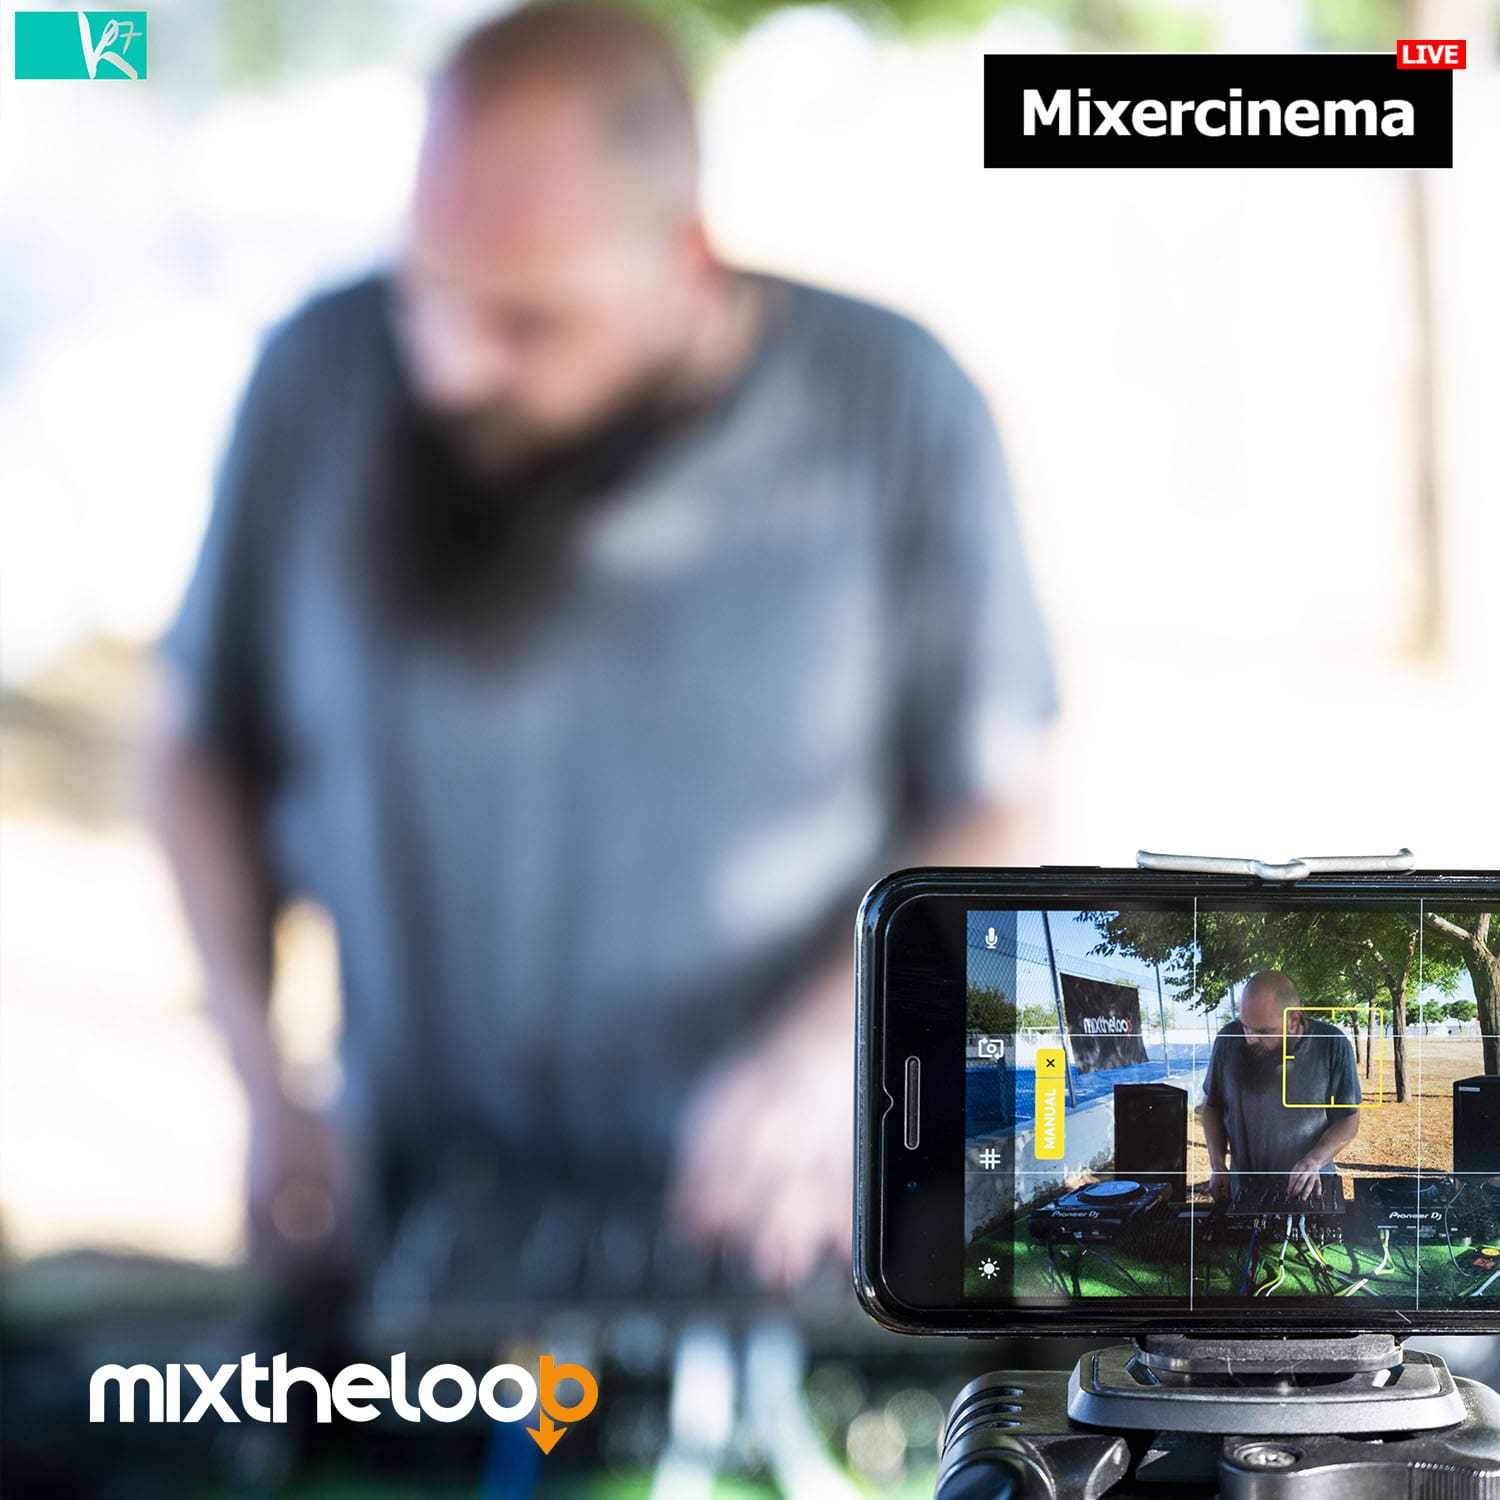 Mixercinema @ Mixtheloop's live streaming 27.06.20